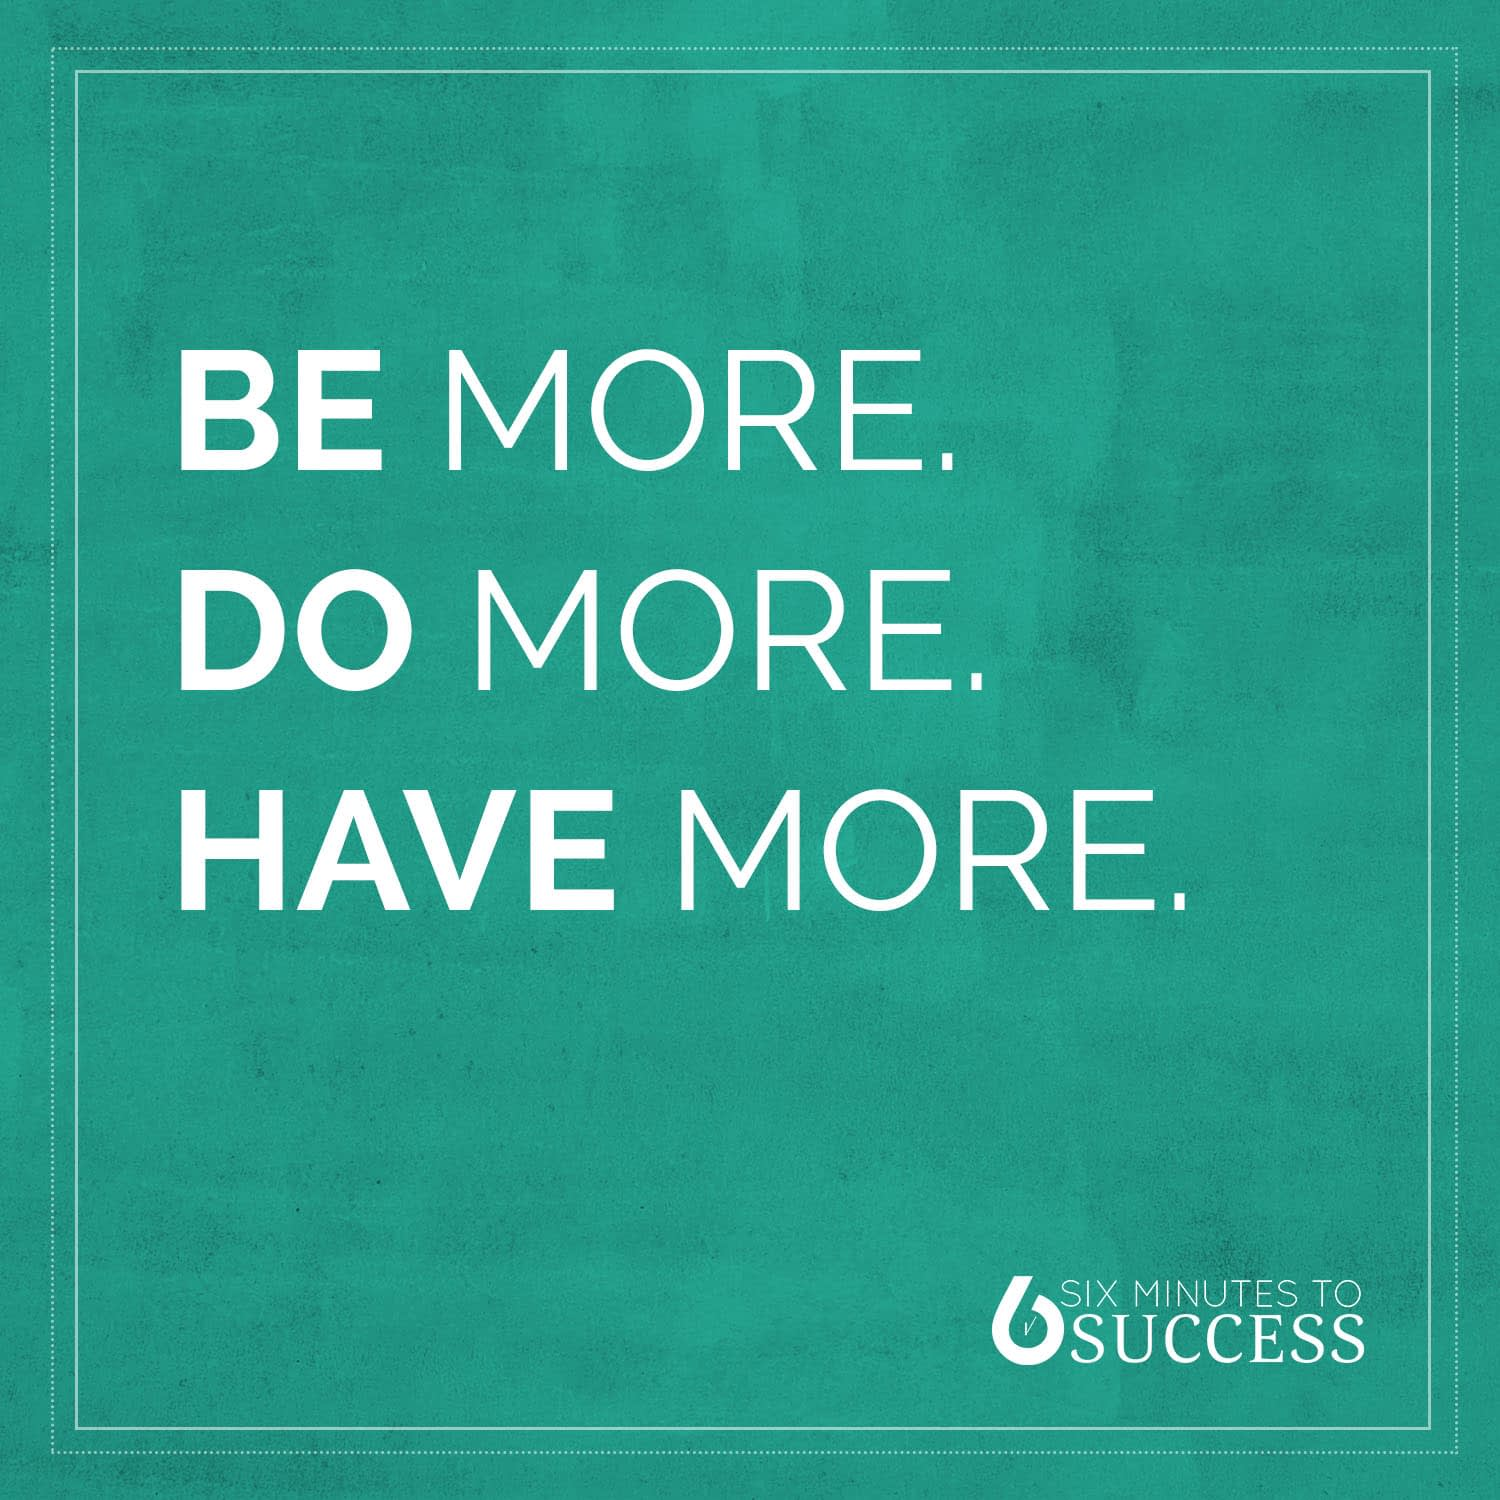 Be More Do More Have More